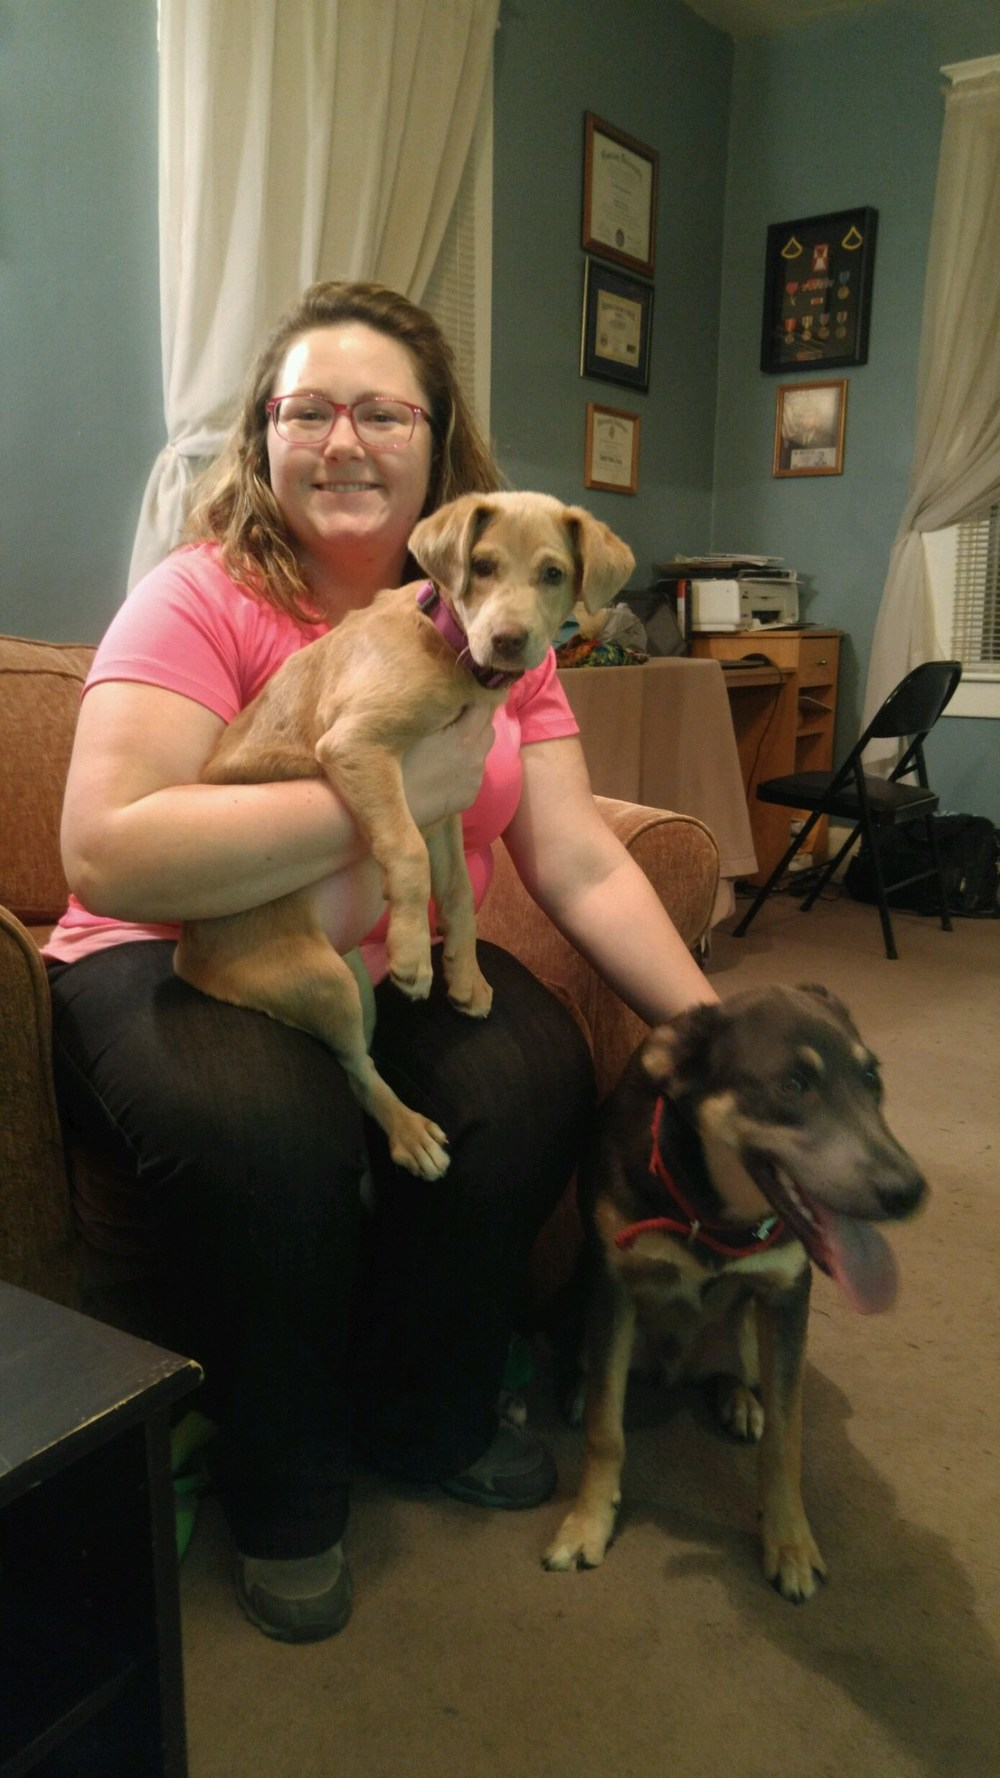 CJ was adopted by Danielle and her fur brother, Axel (on right).